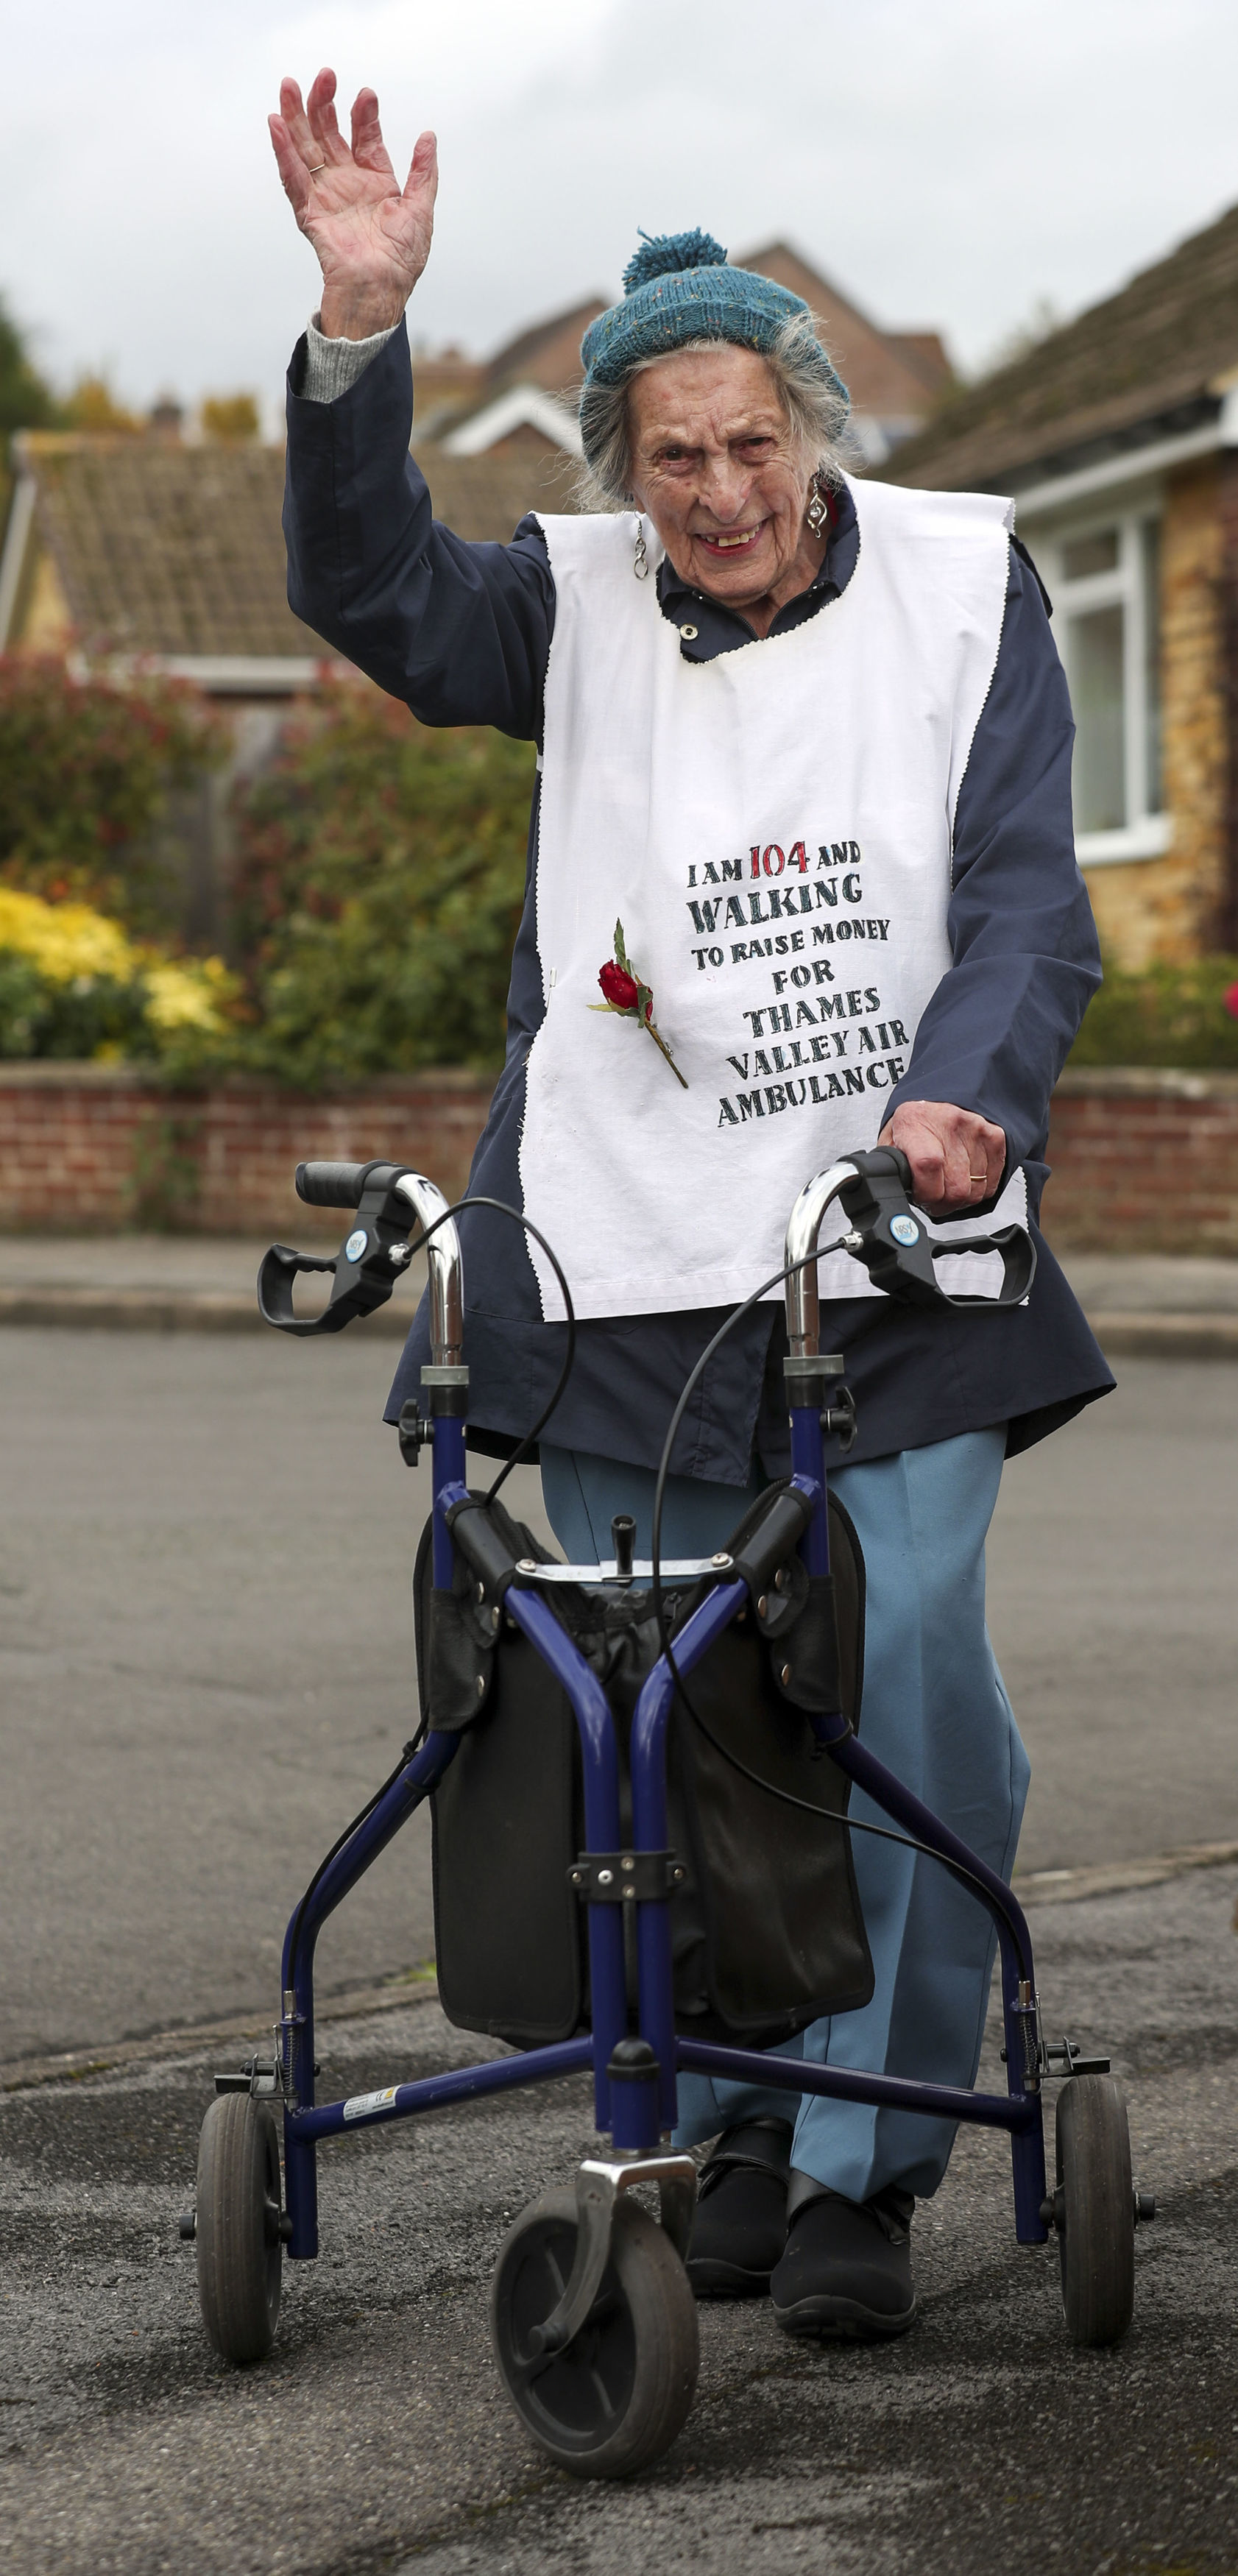 104-year-old woman walking a marathon to raise money for charity